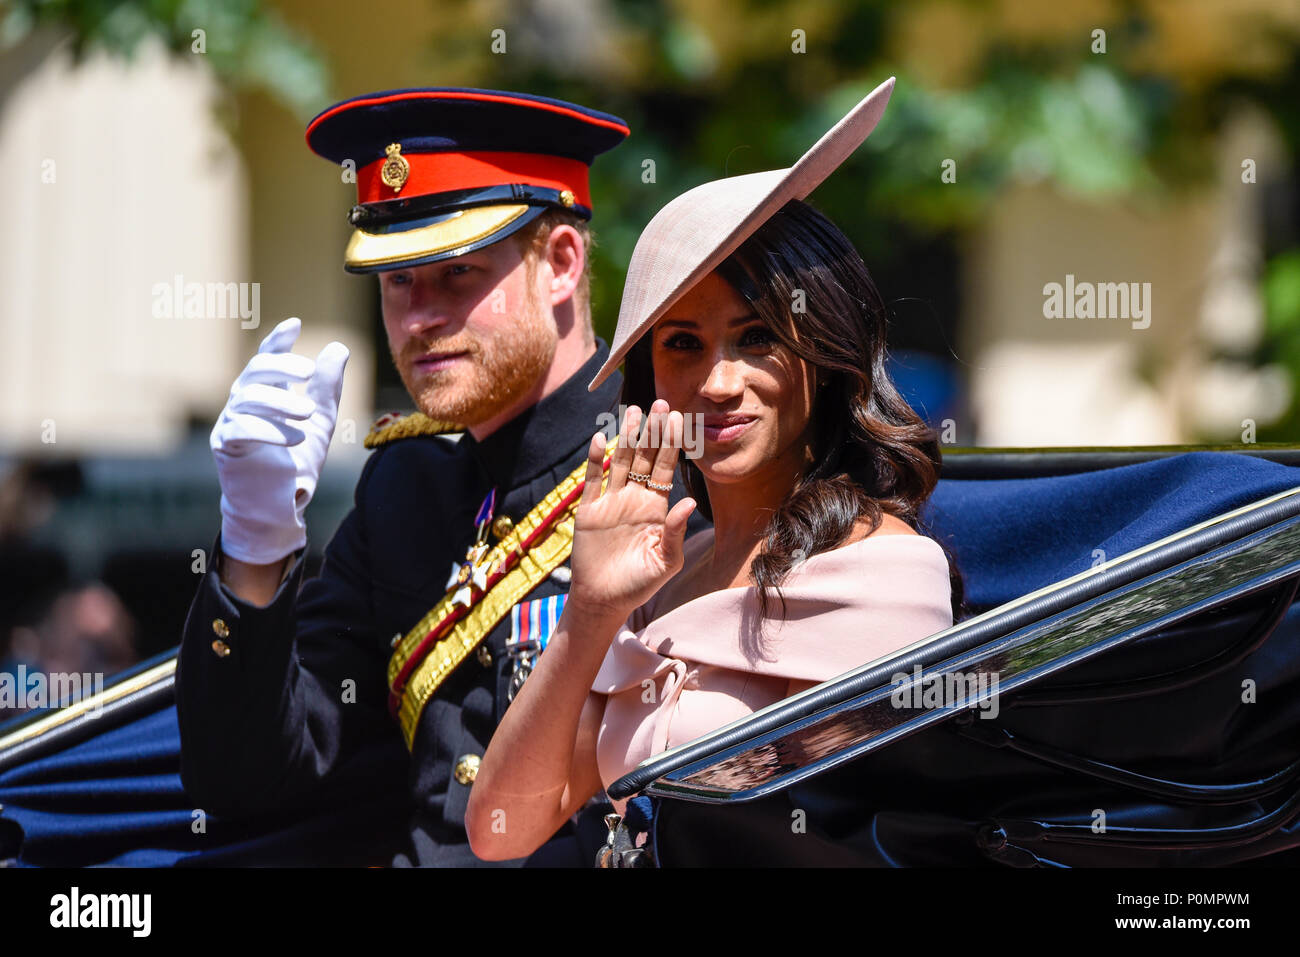 trooping-the-colour-2018-meghan-markle-duchess-of-sussex-and-prince-harry-duke-of-sussex-in-carriage-on-the-mall-london-P0MPWM.jpg